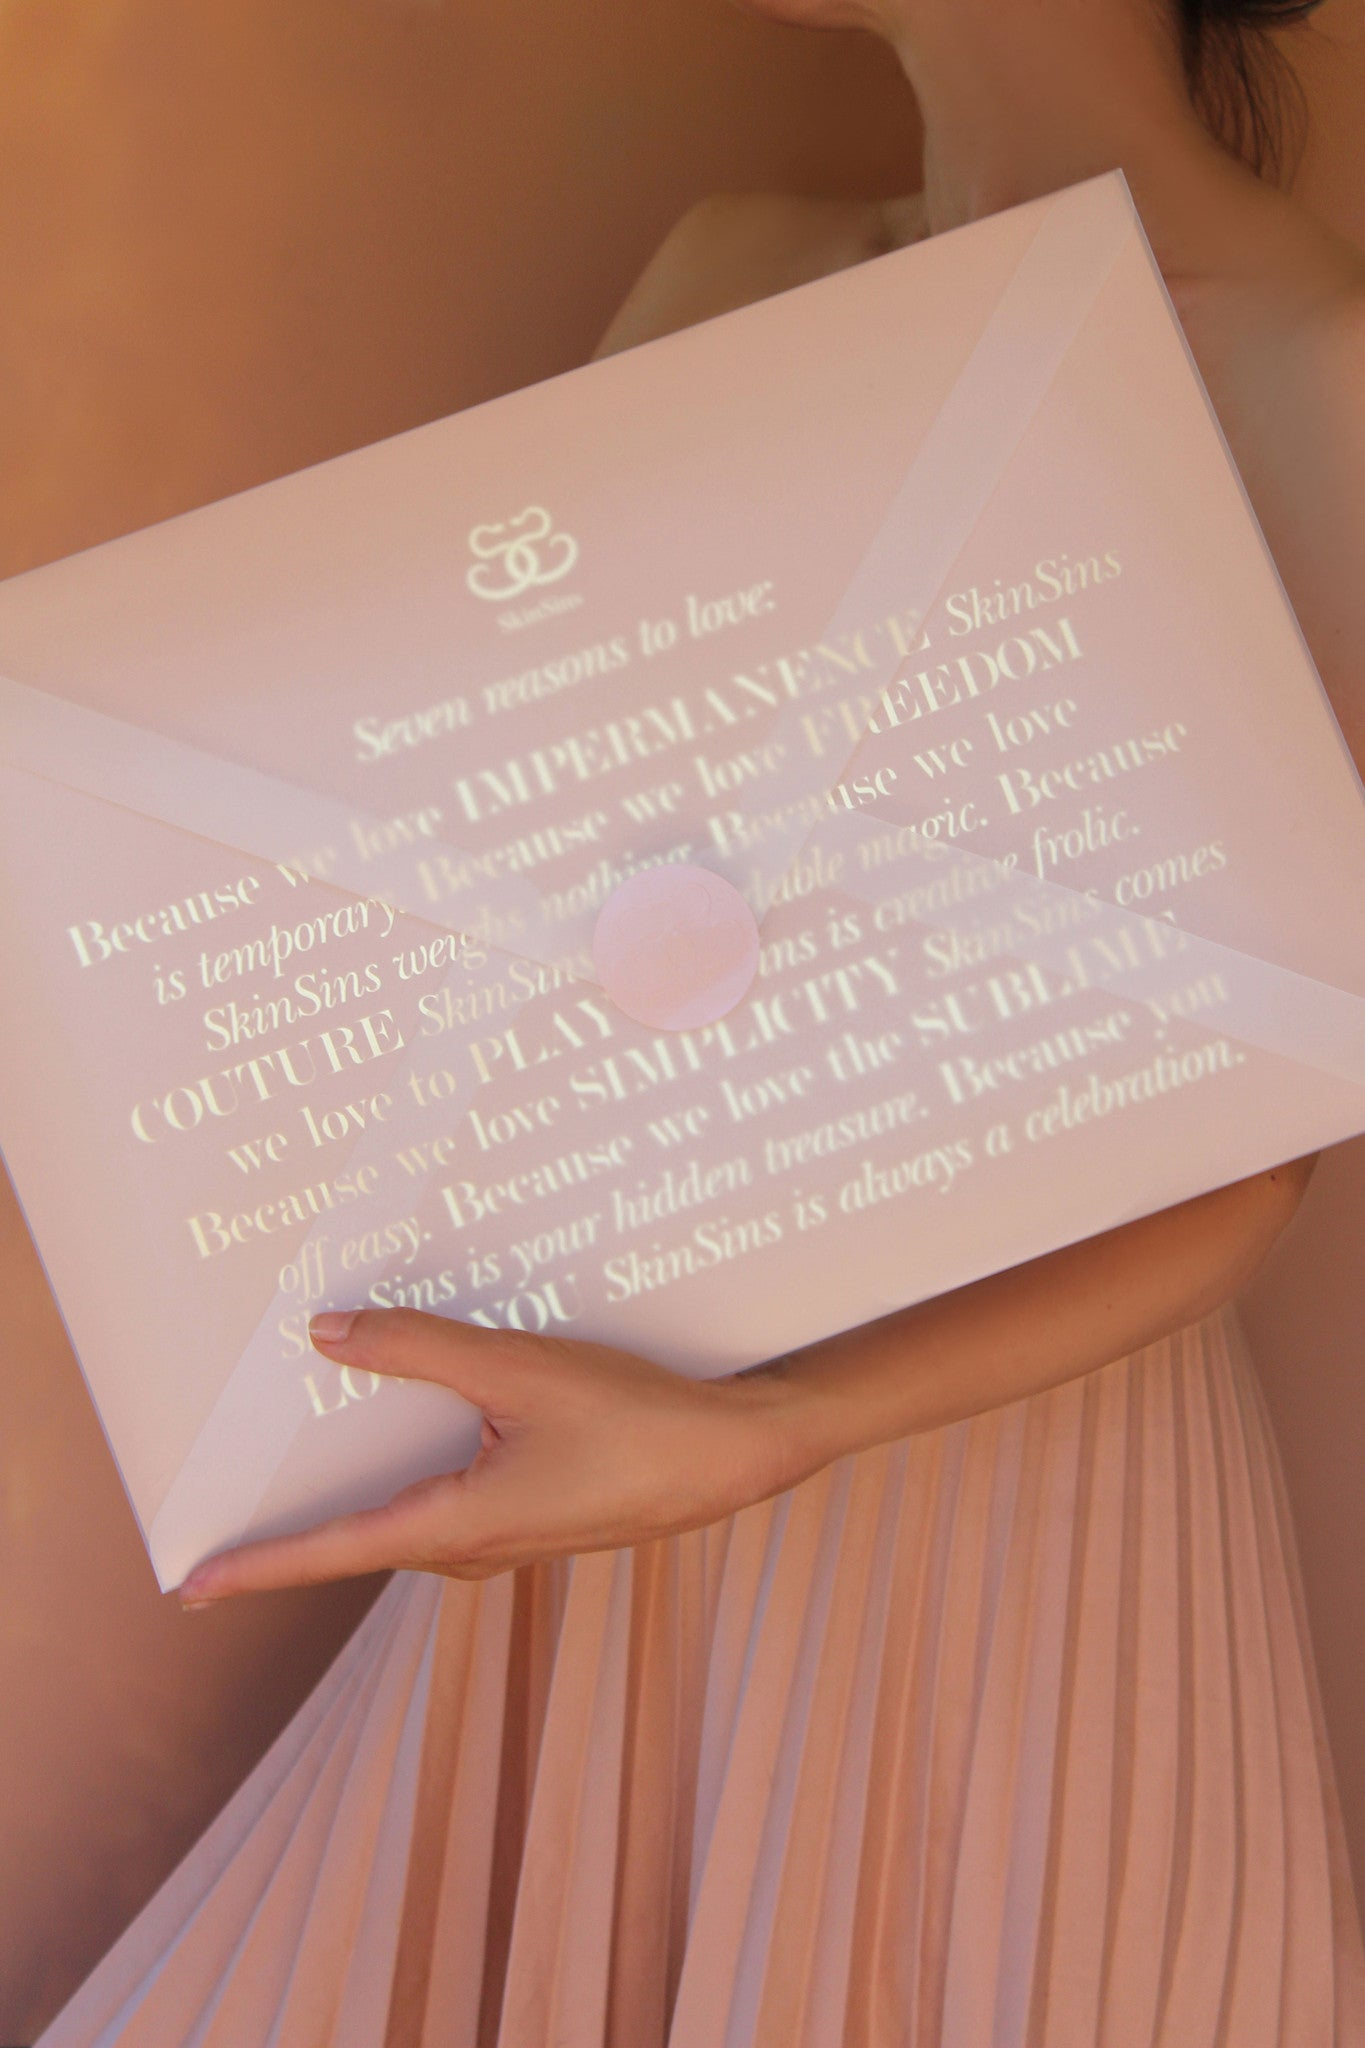 Our packaging design in nude pink by SkinSins